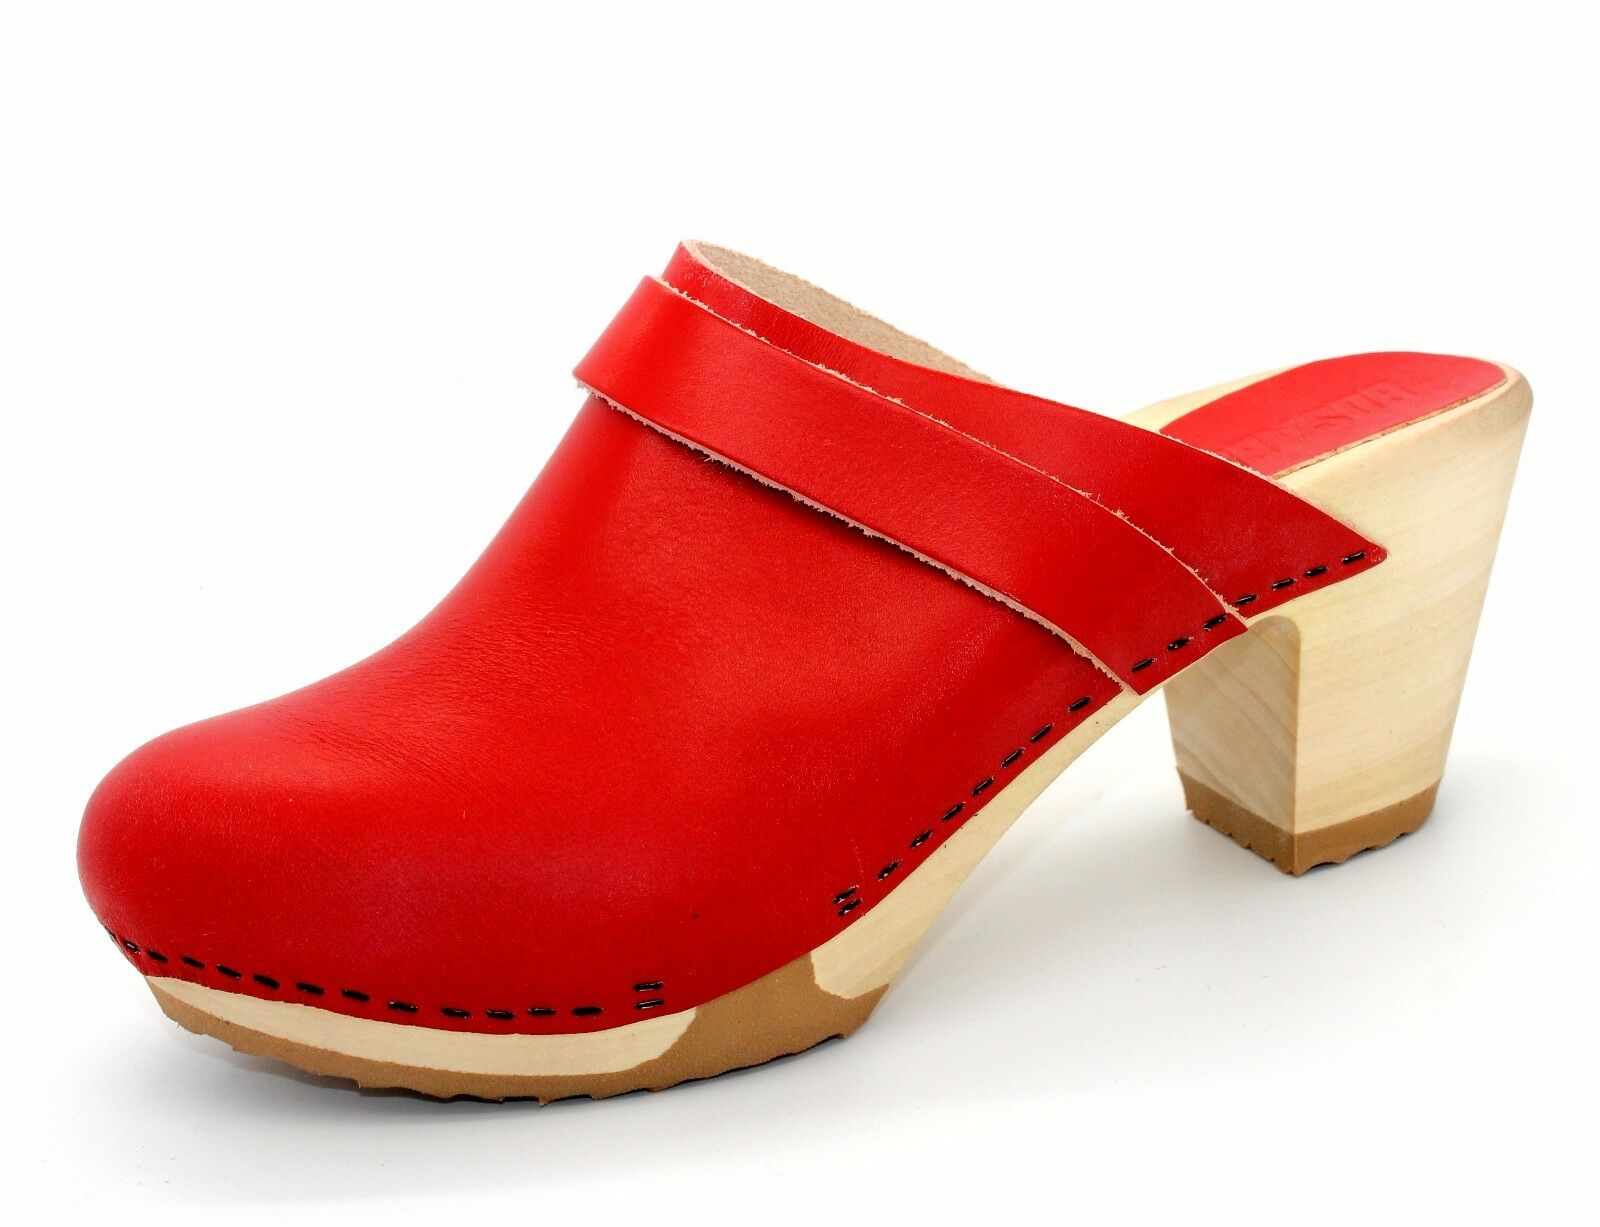 Bosabo Kety Womens UK UK UK 6 EU 39 Red Leather New Mule Clogs with Wooden Sole e9d7da